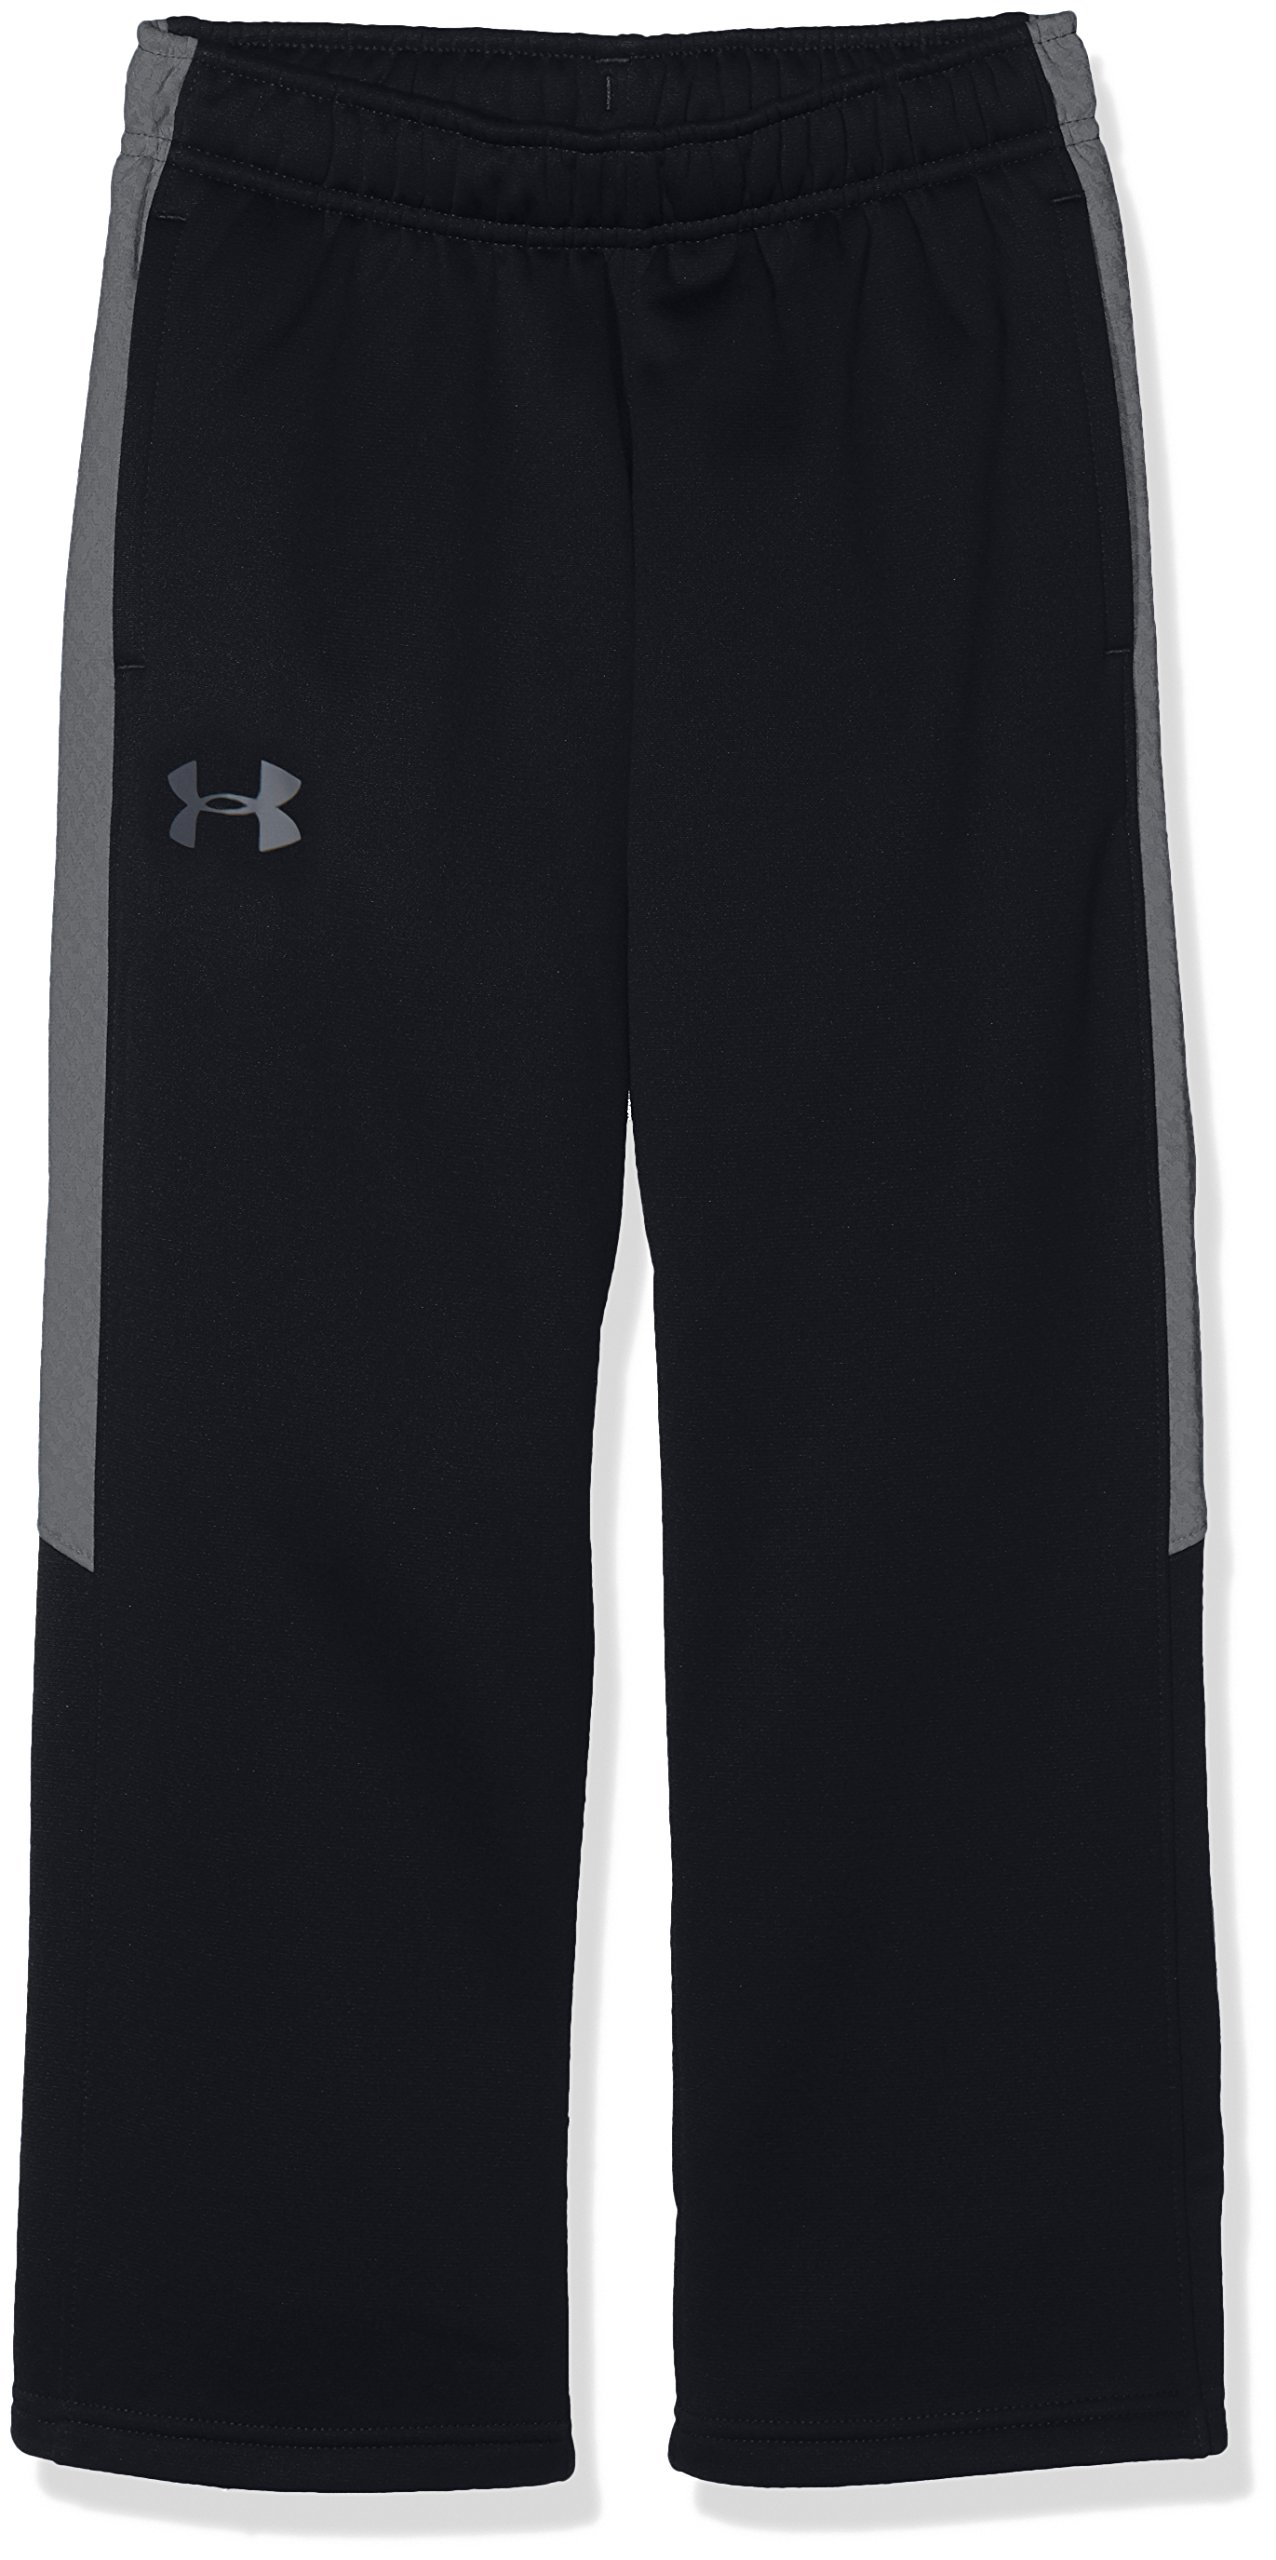 Under Armour UA Storm Armour Fleece Youth X-Large Black by Under Armour (Image #1)